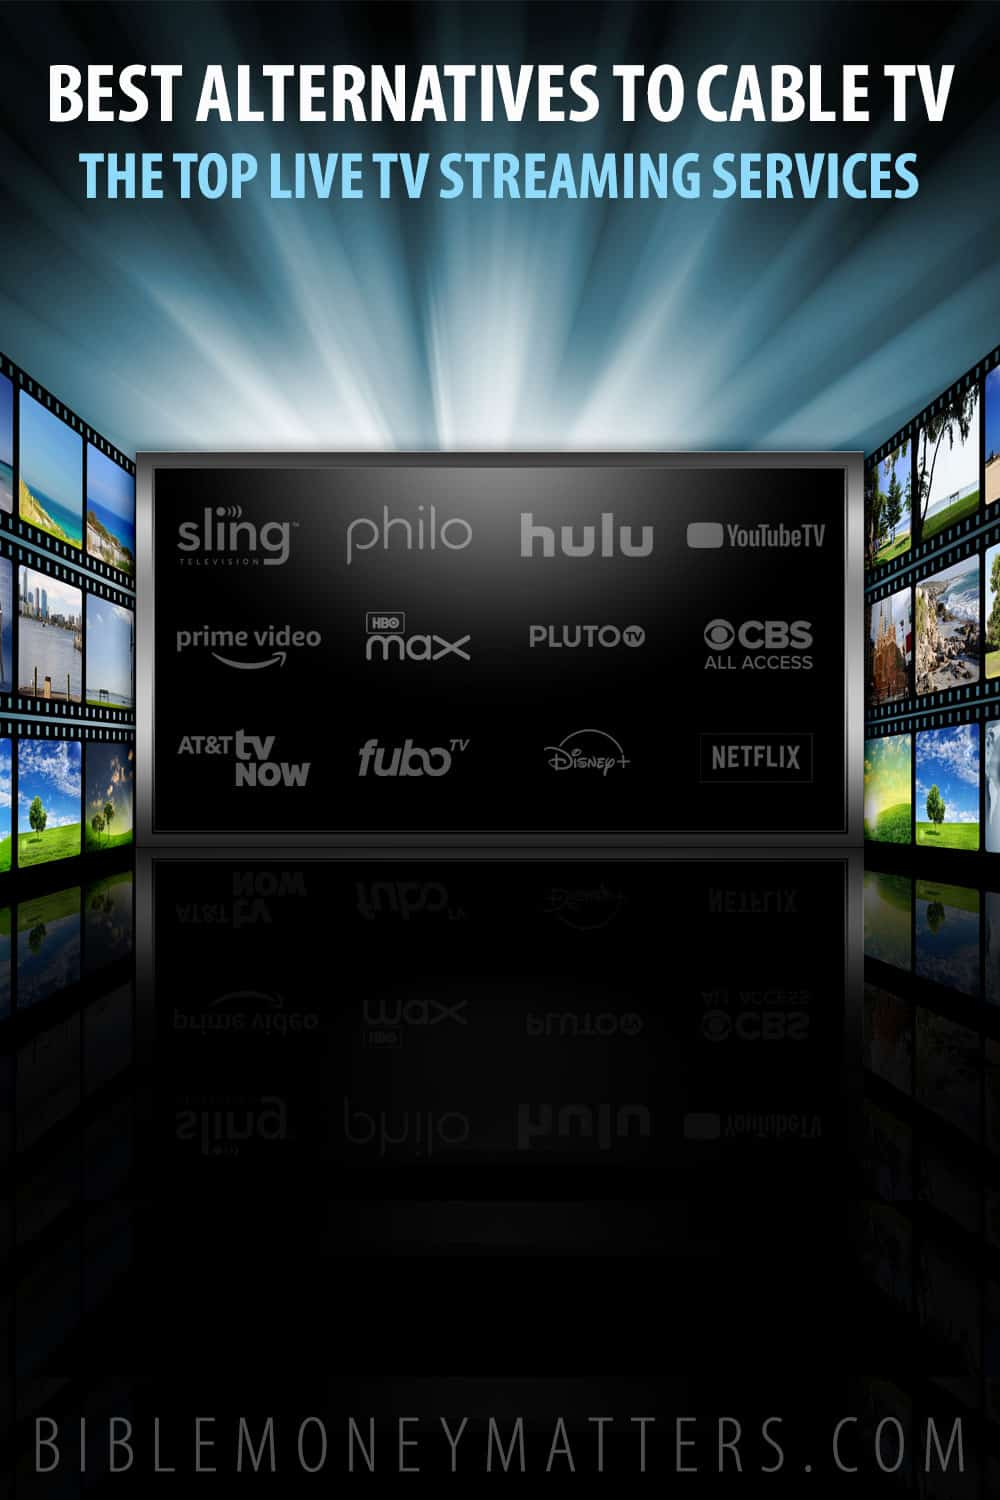 There are more low cost alternatives to cable TV today than there ever has been. Here\'s a review of the pros and cons of all the live TV streaming services.